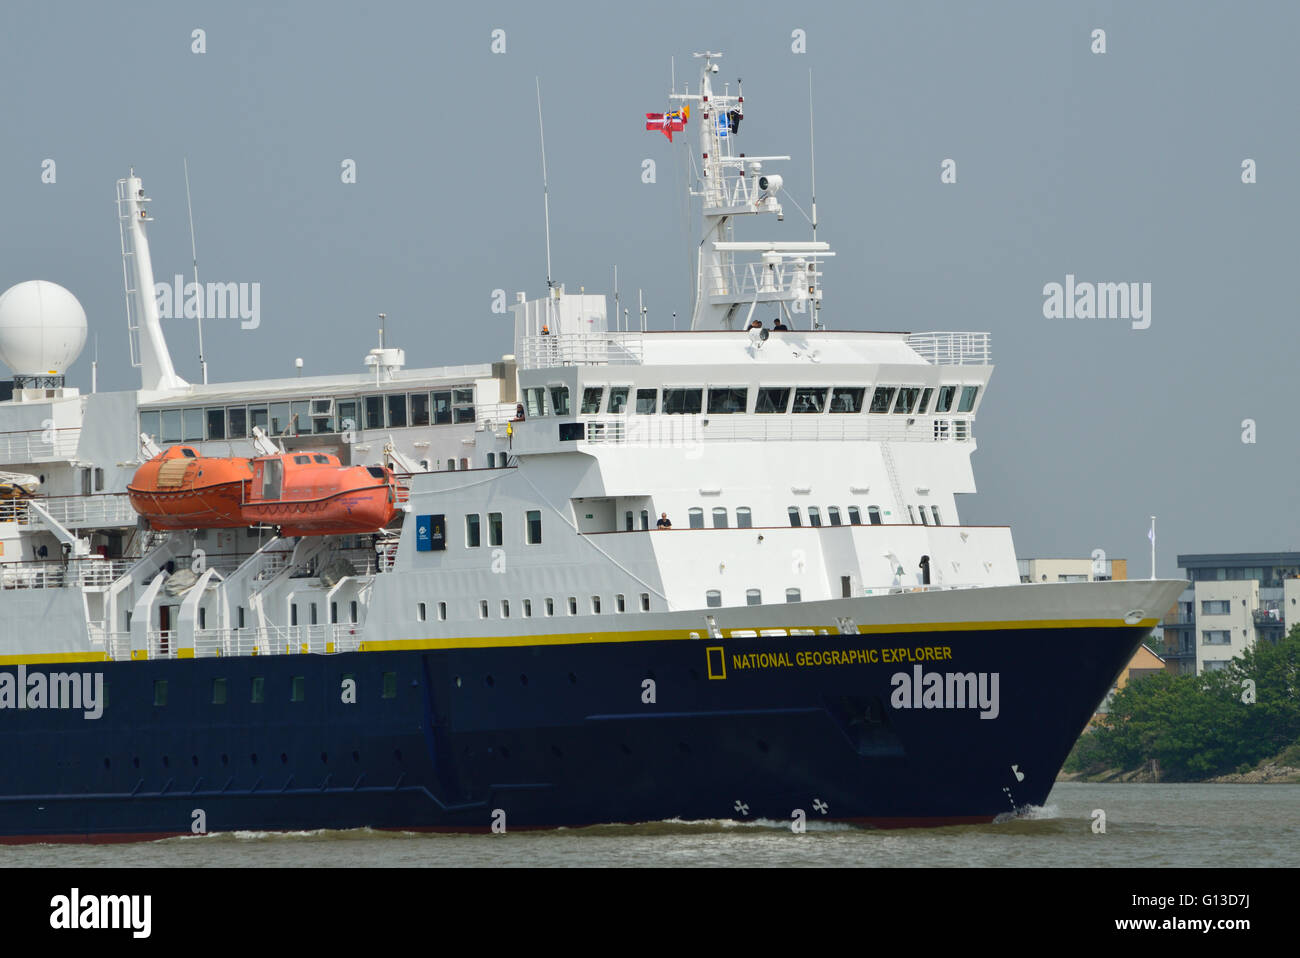 N G Explorer is a small cruise ship owned by National Geographic and operated by Lindblad Expeditions on various - Stock Image